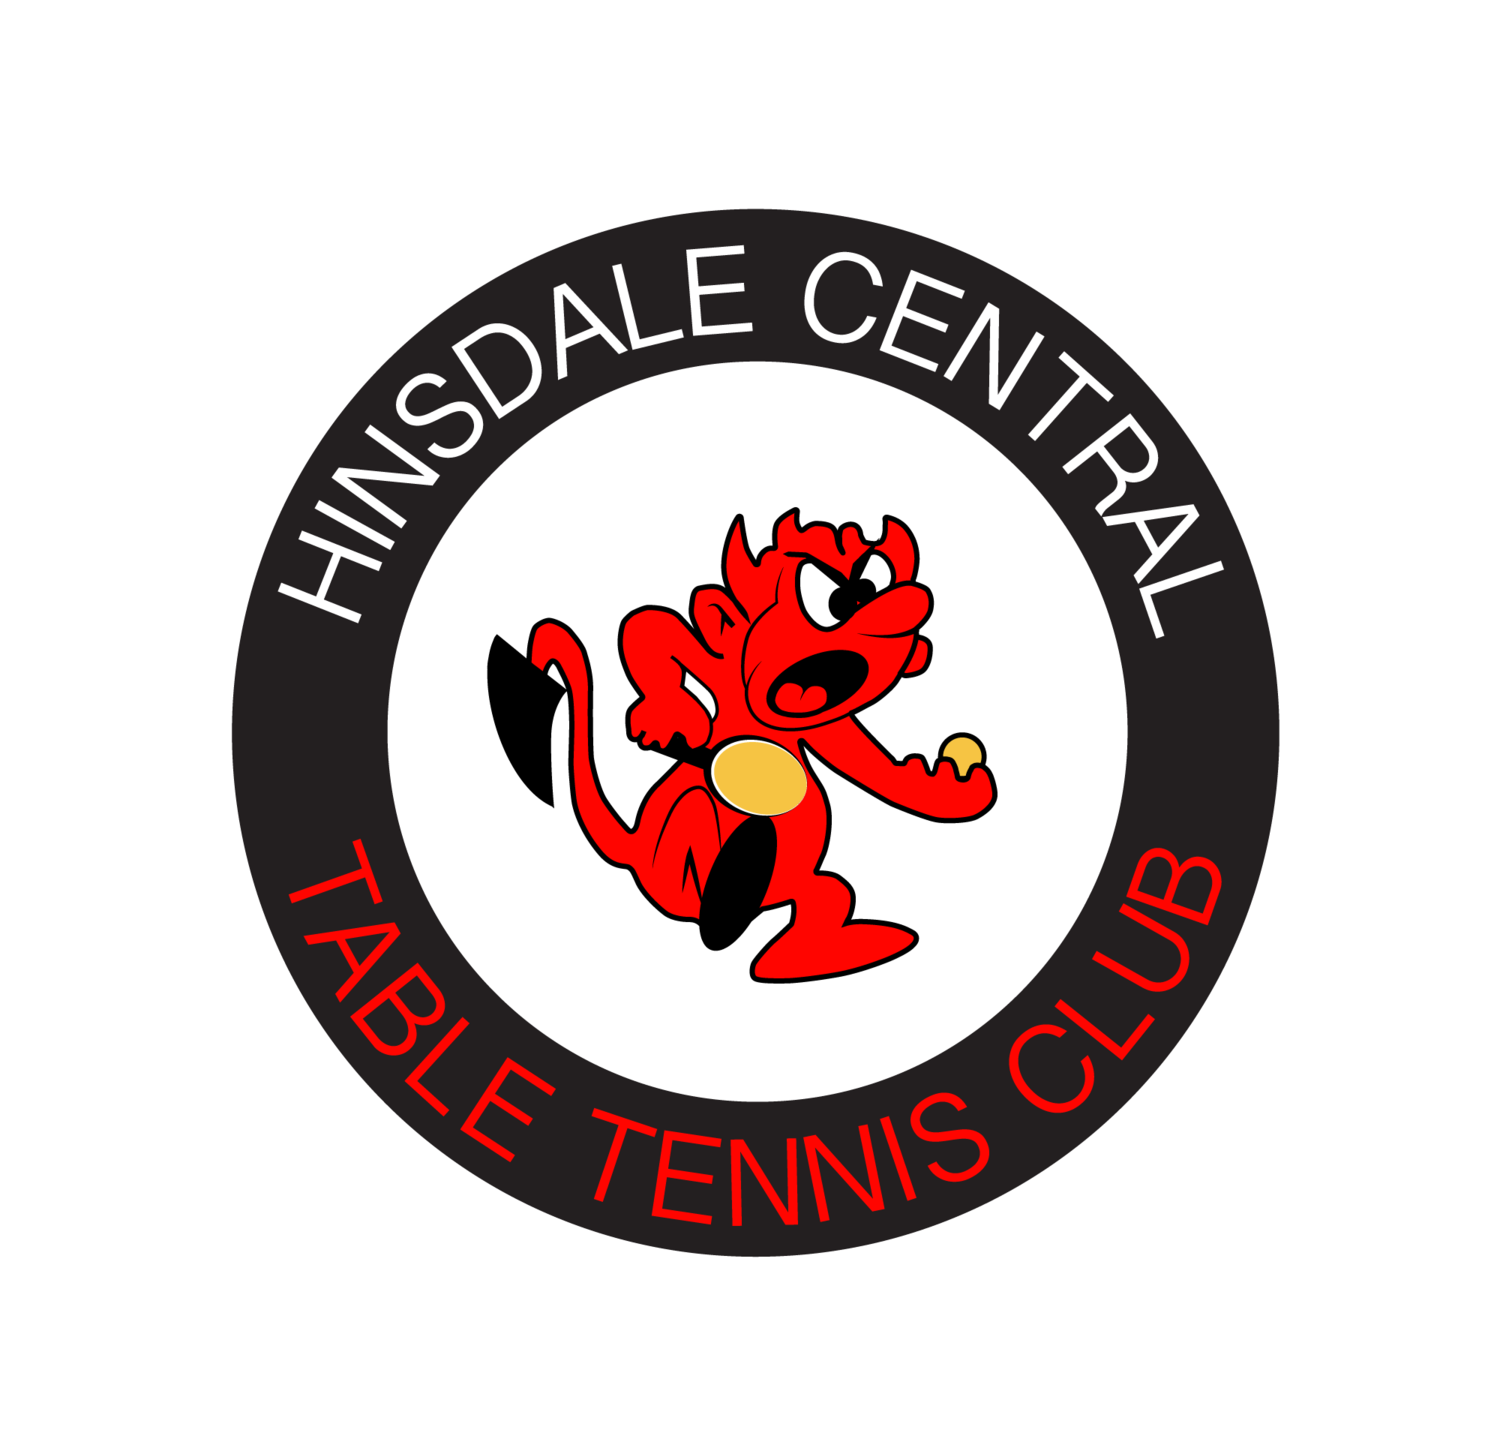 HINSDALE CENTRAL TABLE TENNIS